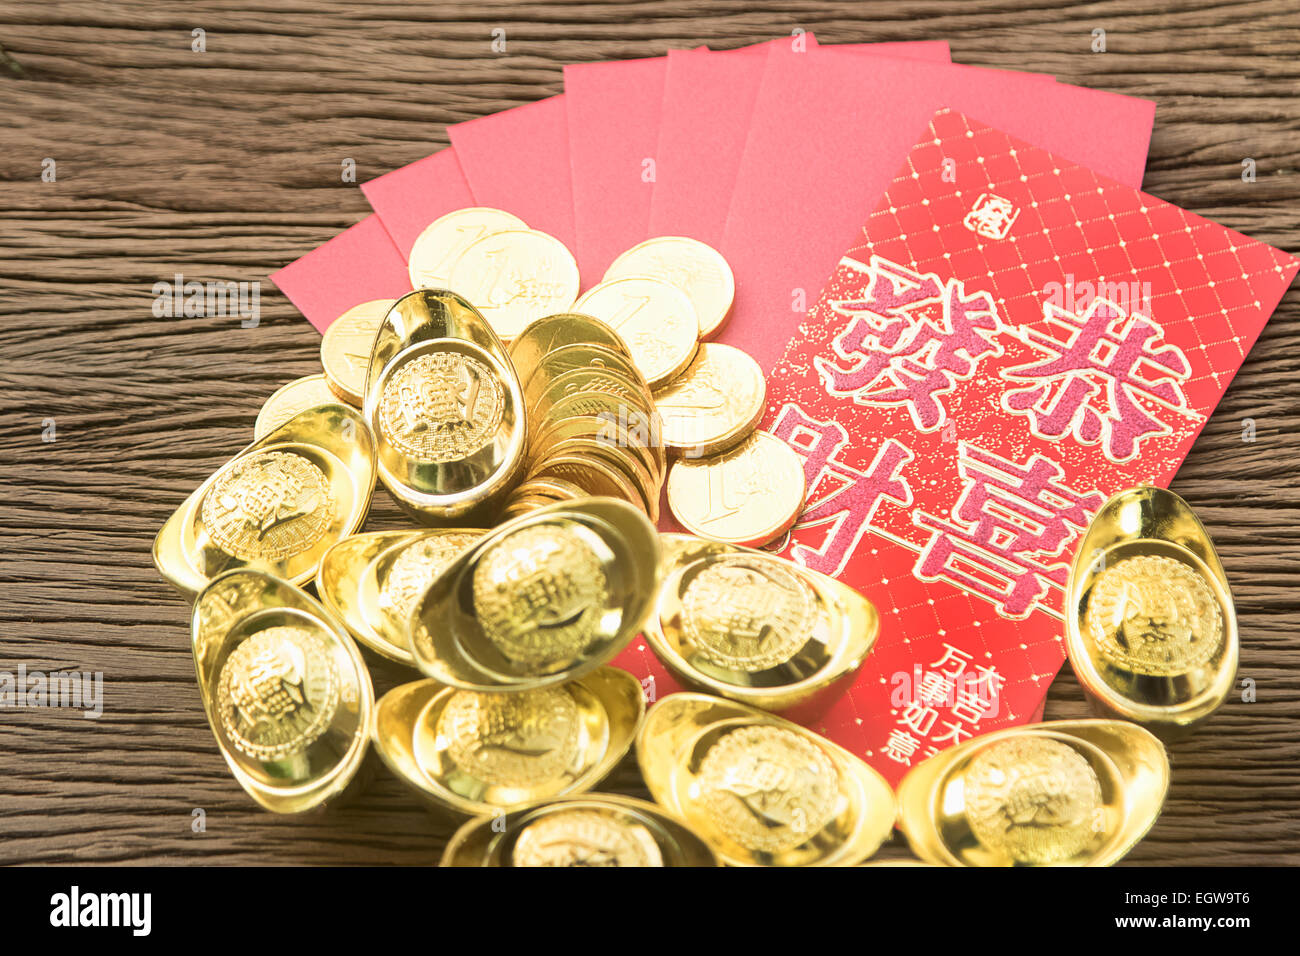 Chinese gold and red envelope chinese new year symbol of wealth and     Chinese gold and red envelope chinese new year symbol of wealth and  prosperity for business and Chinese New Year